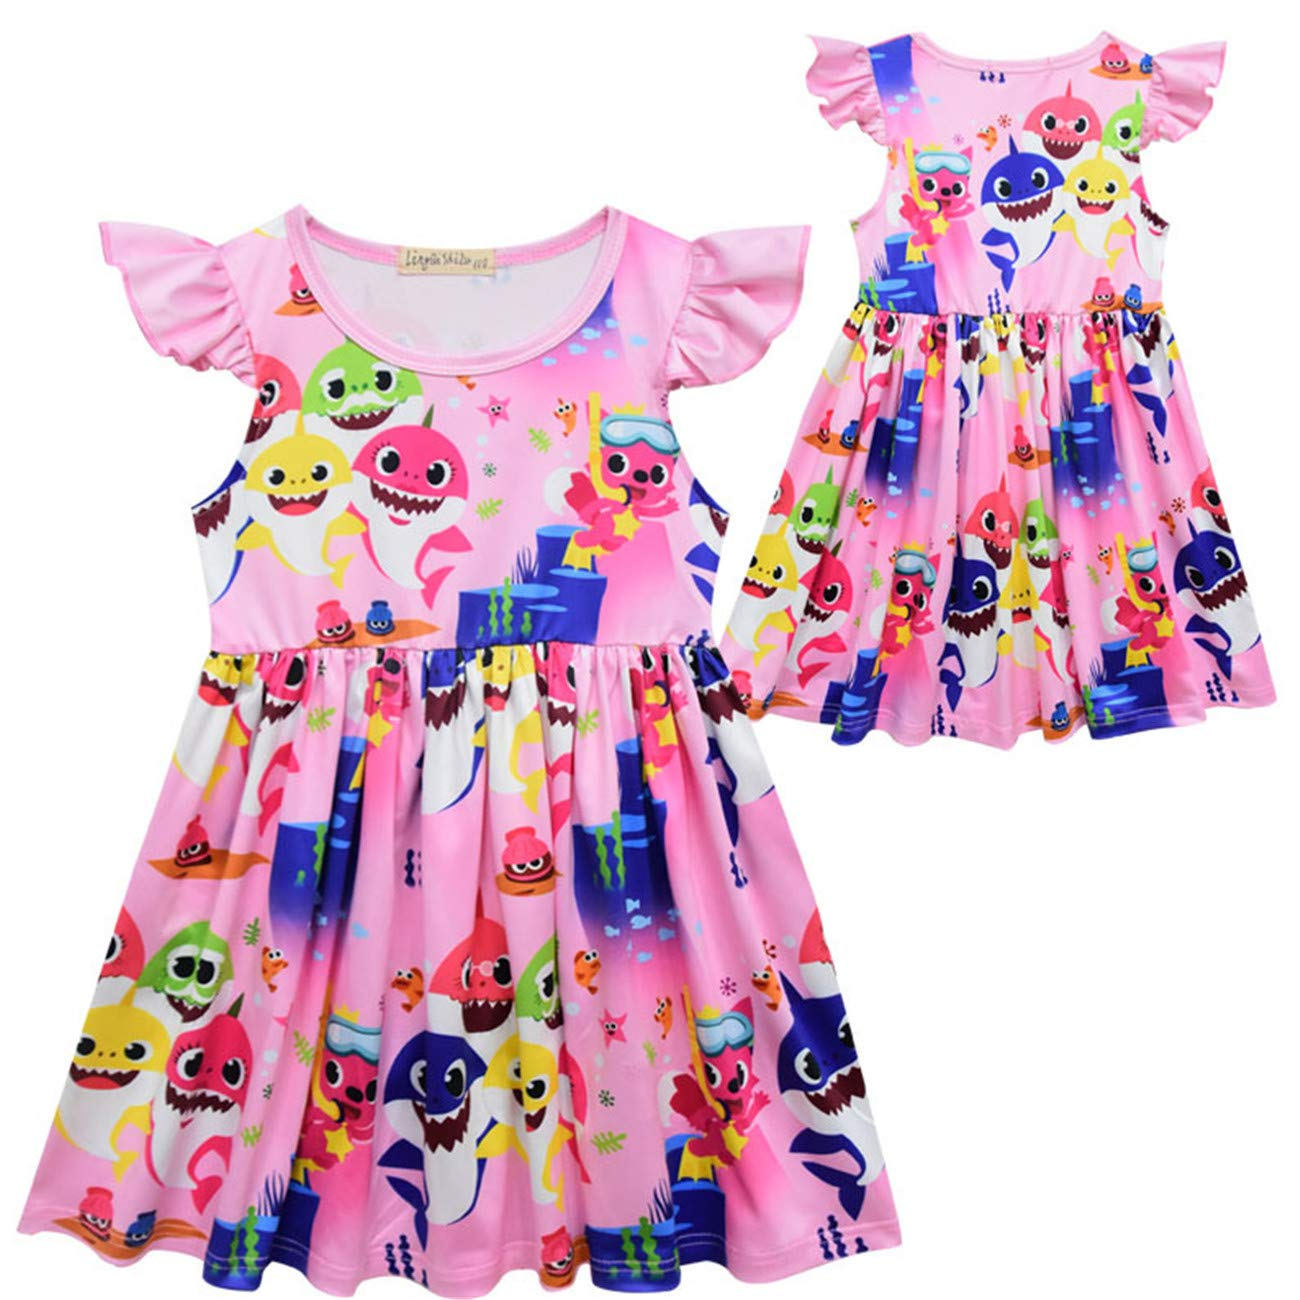 AISCOOL Girls Cotton Ruffled Sleeve Dresses Kids Shark Clothes Outfits 3-7 Years